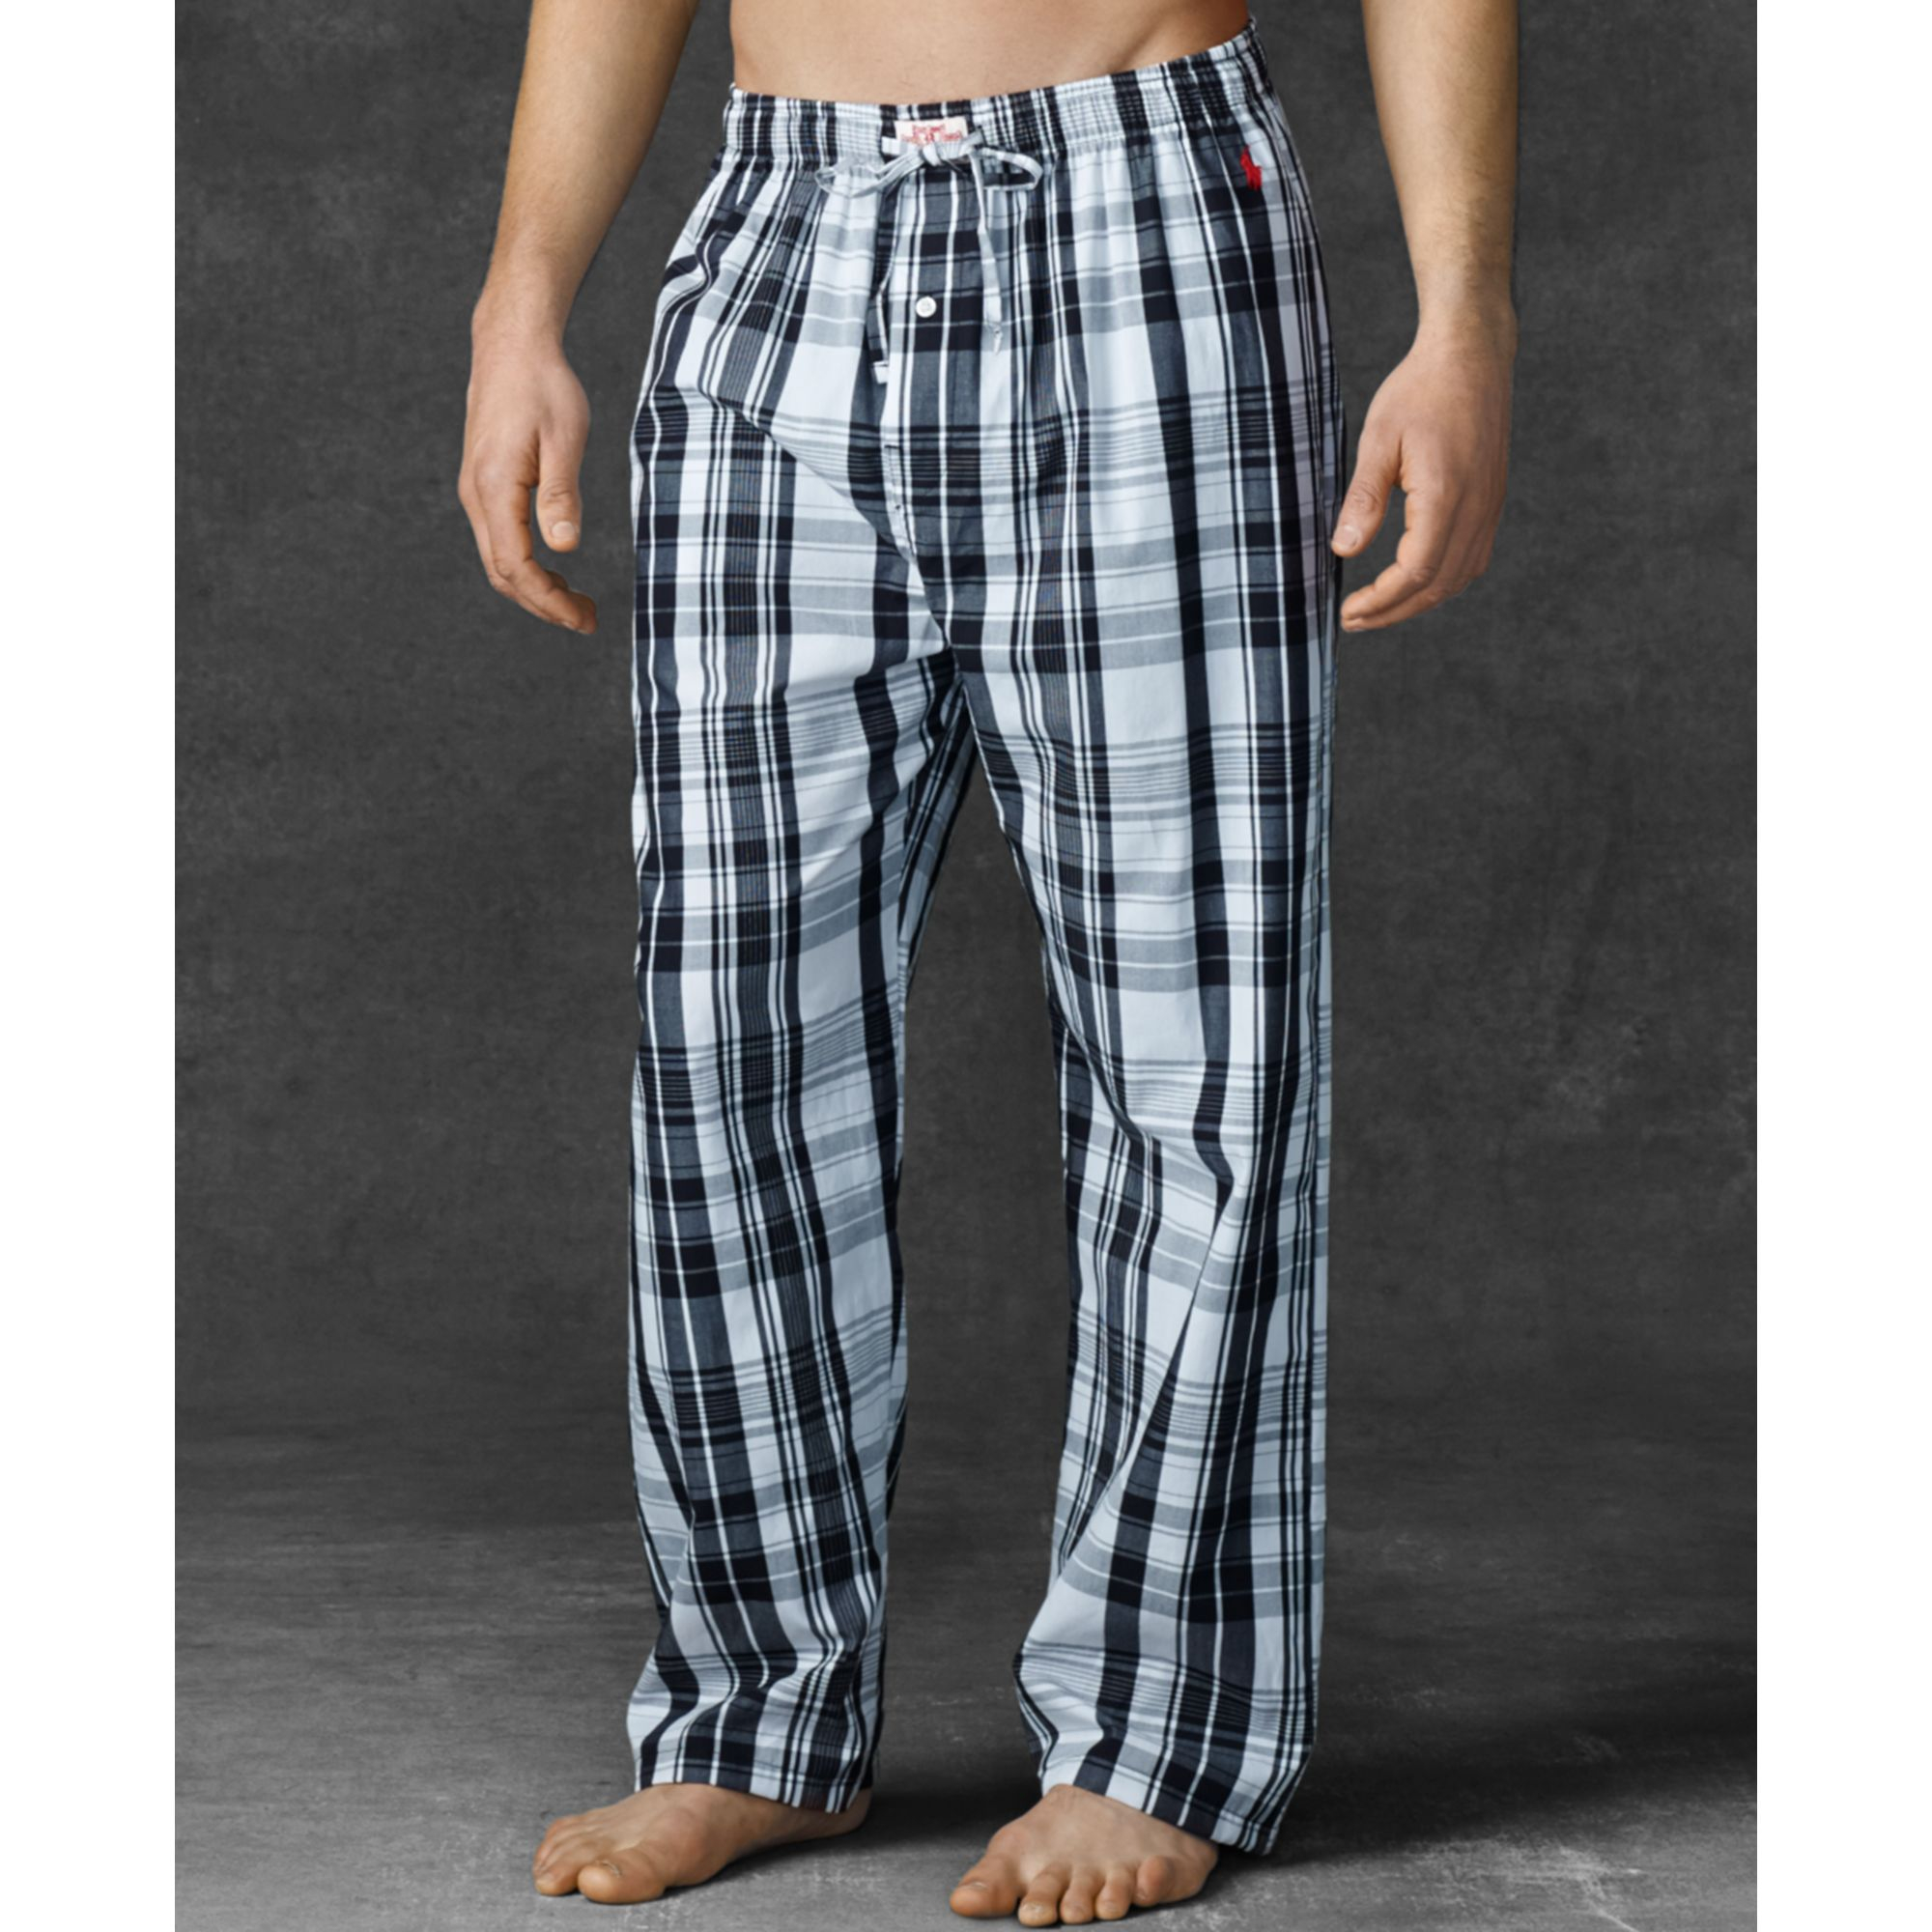 The soft comfort of flannel pajama pants envelops you in cozy warmth. You can pair this pajama essential with a plain V-neck pajama shirt or a matching button-up flannel pajama shirt. Pajama sets are also available in lightweight materials like cotton that are perfectly suited to the temperature of .